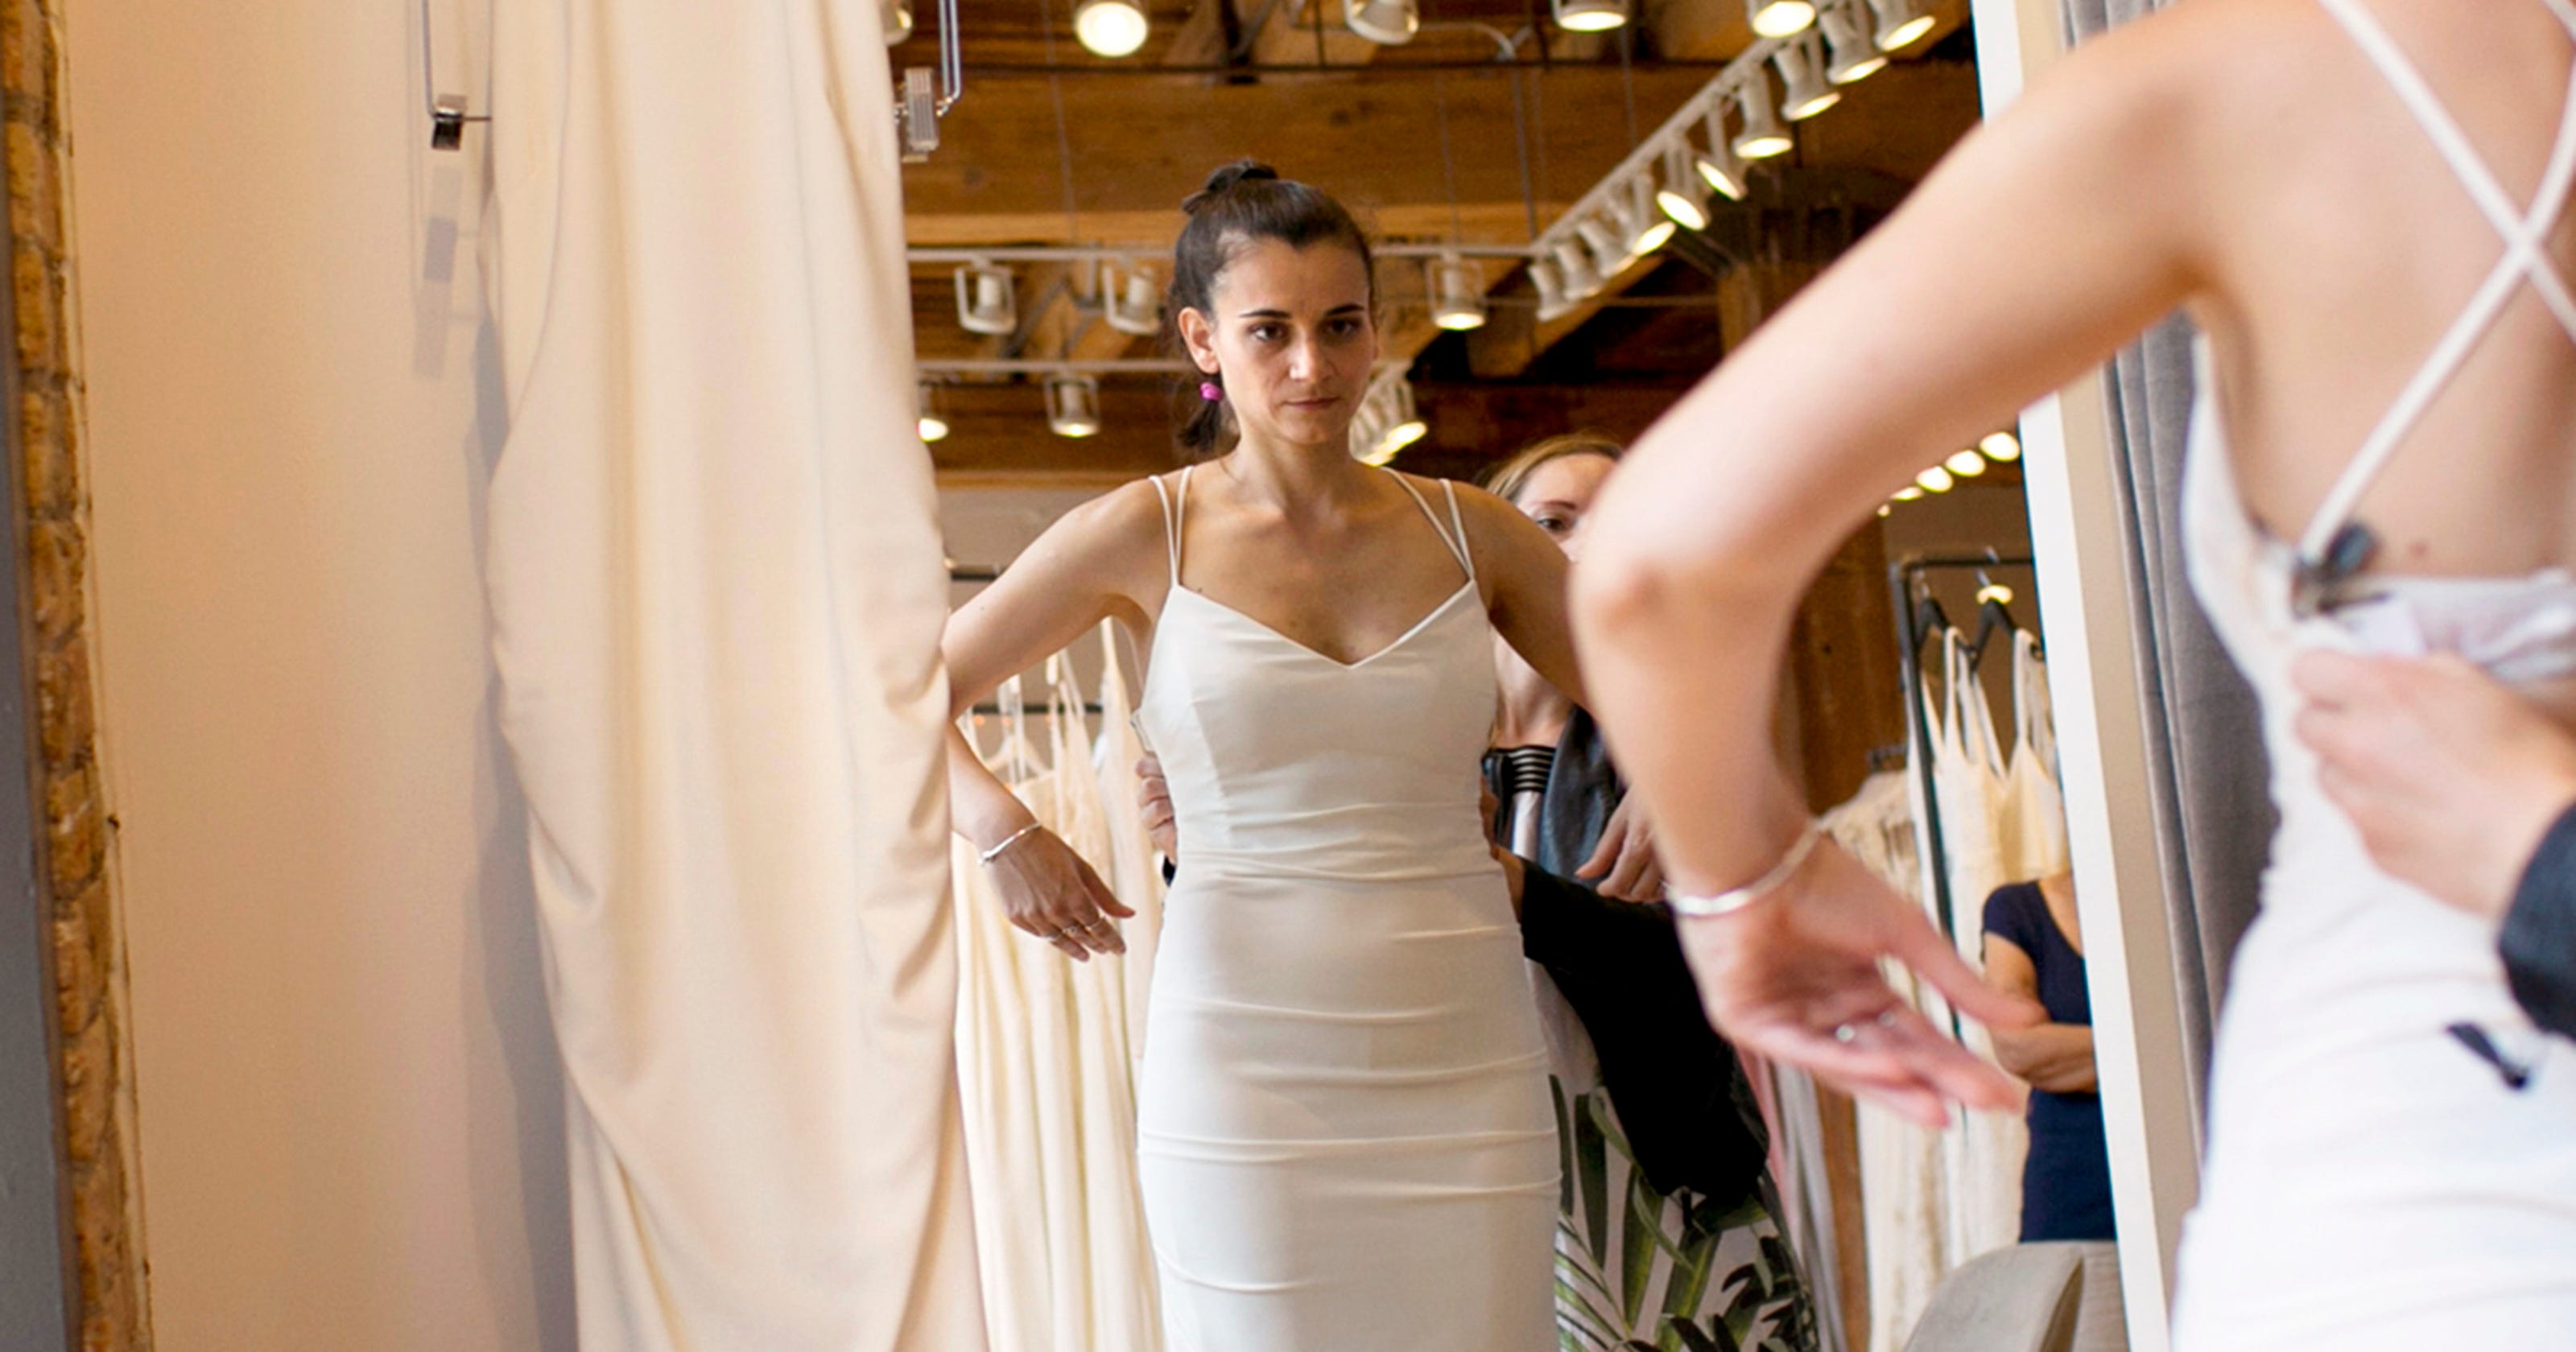 Wedding dress shopping not as easy as you think